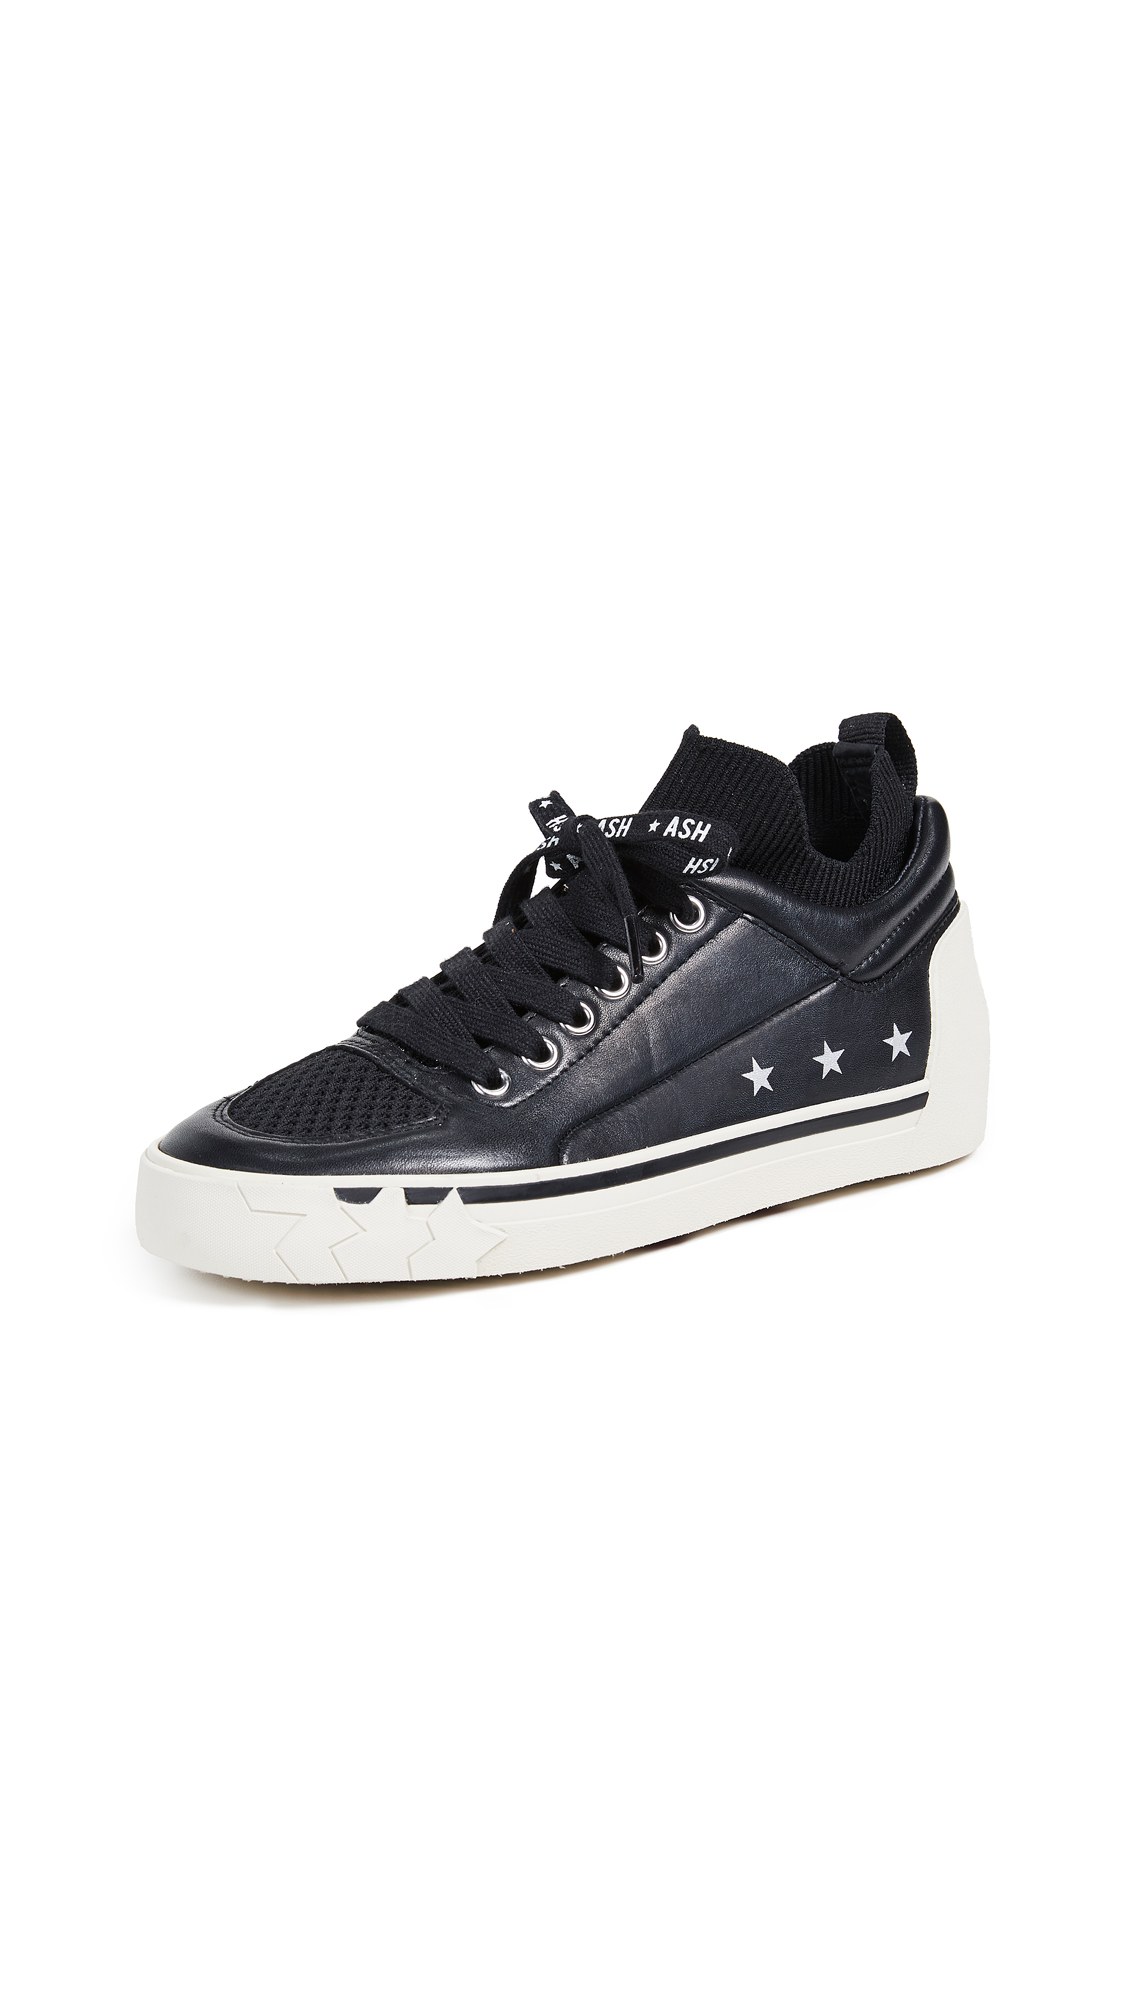 Ash Nippy Sneakers - Black/Black